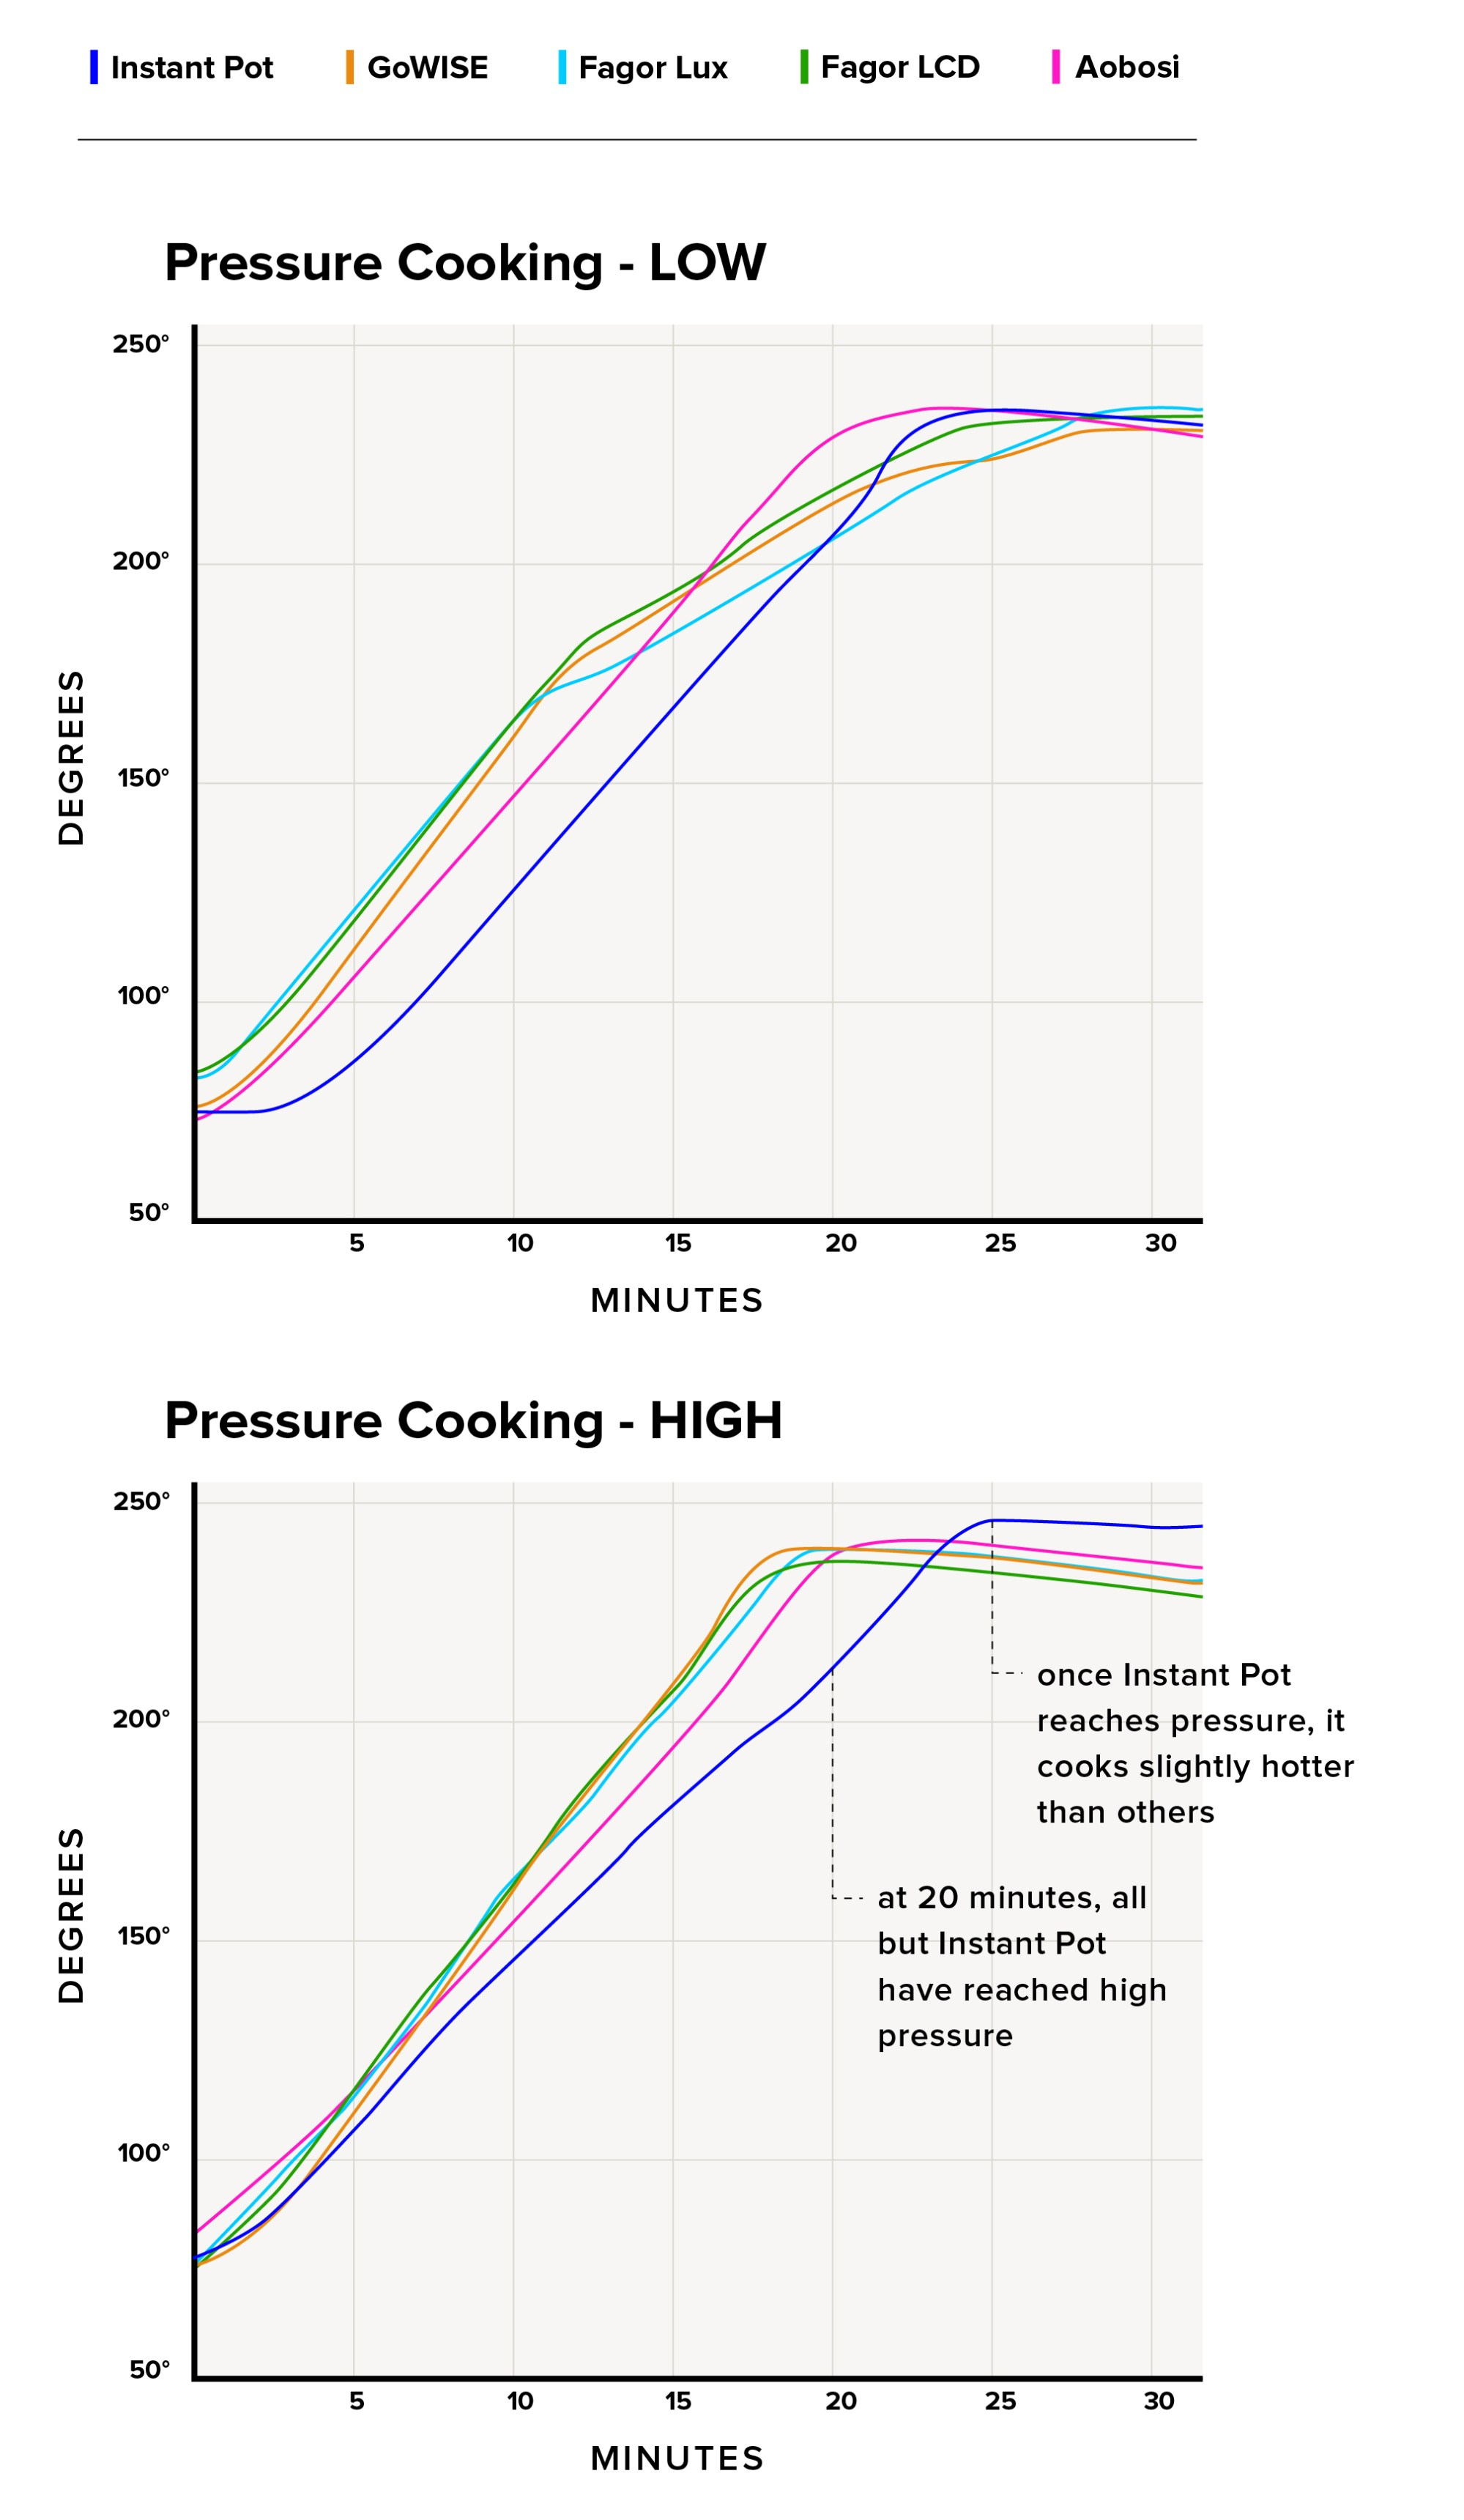 hight resolution of this means multicookers will cook slightly slower than stovetop pressure cookers though still much faster than other cooking methods